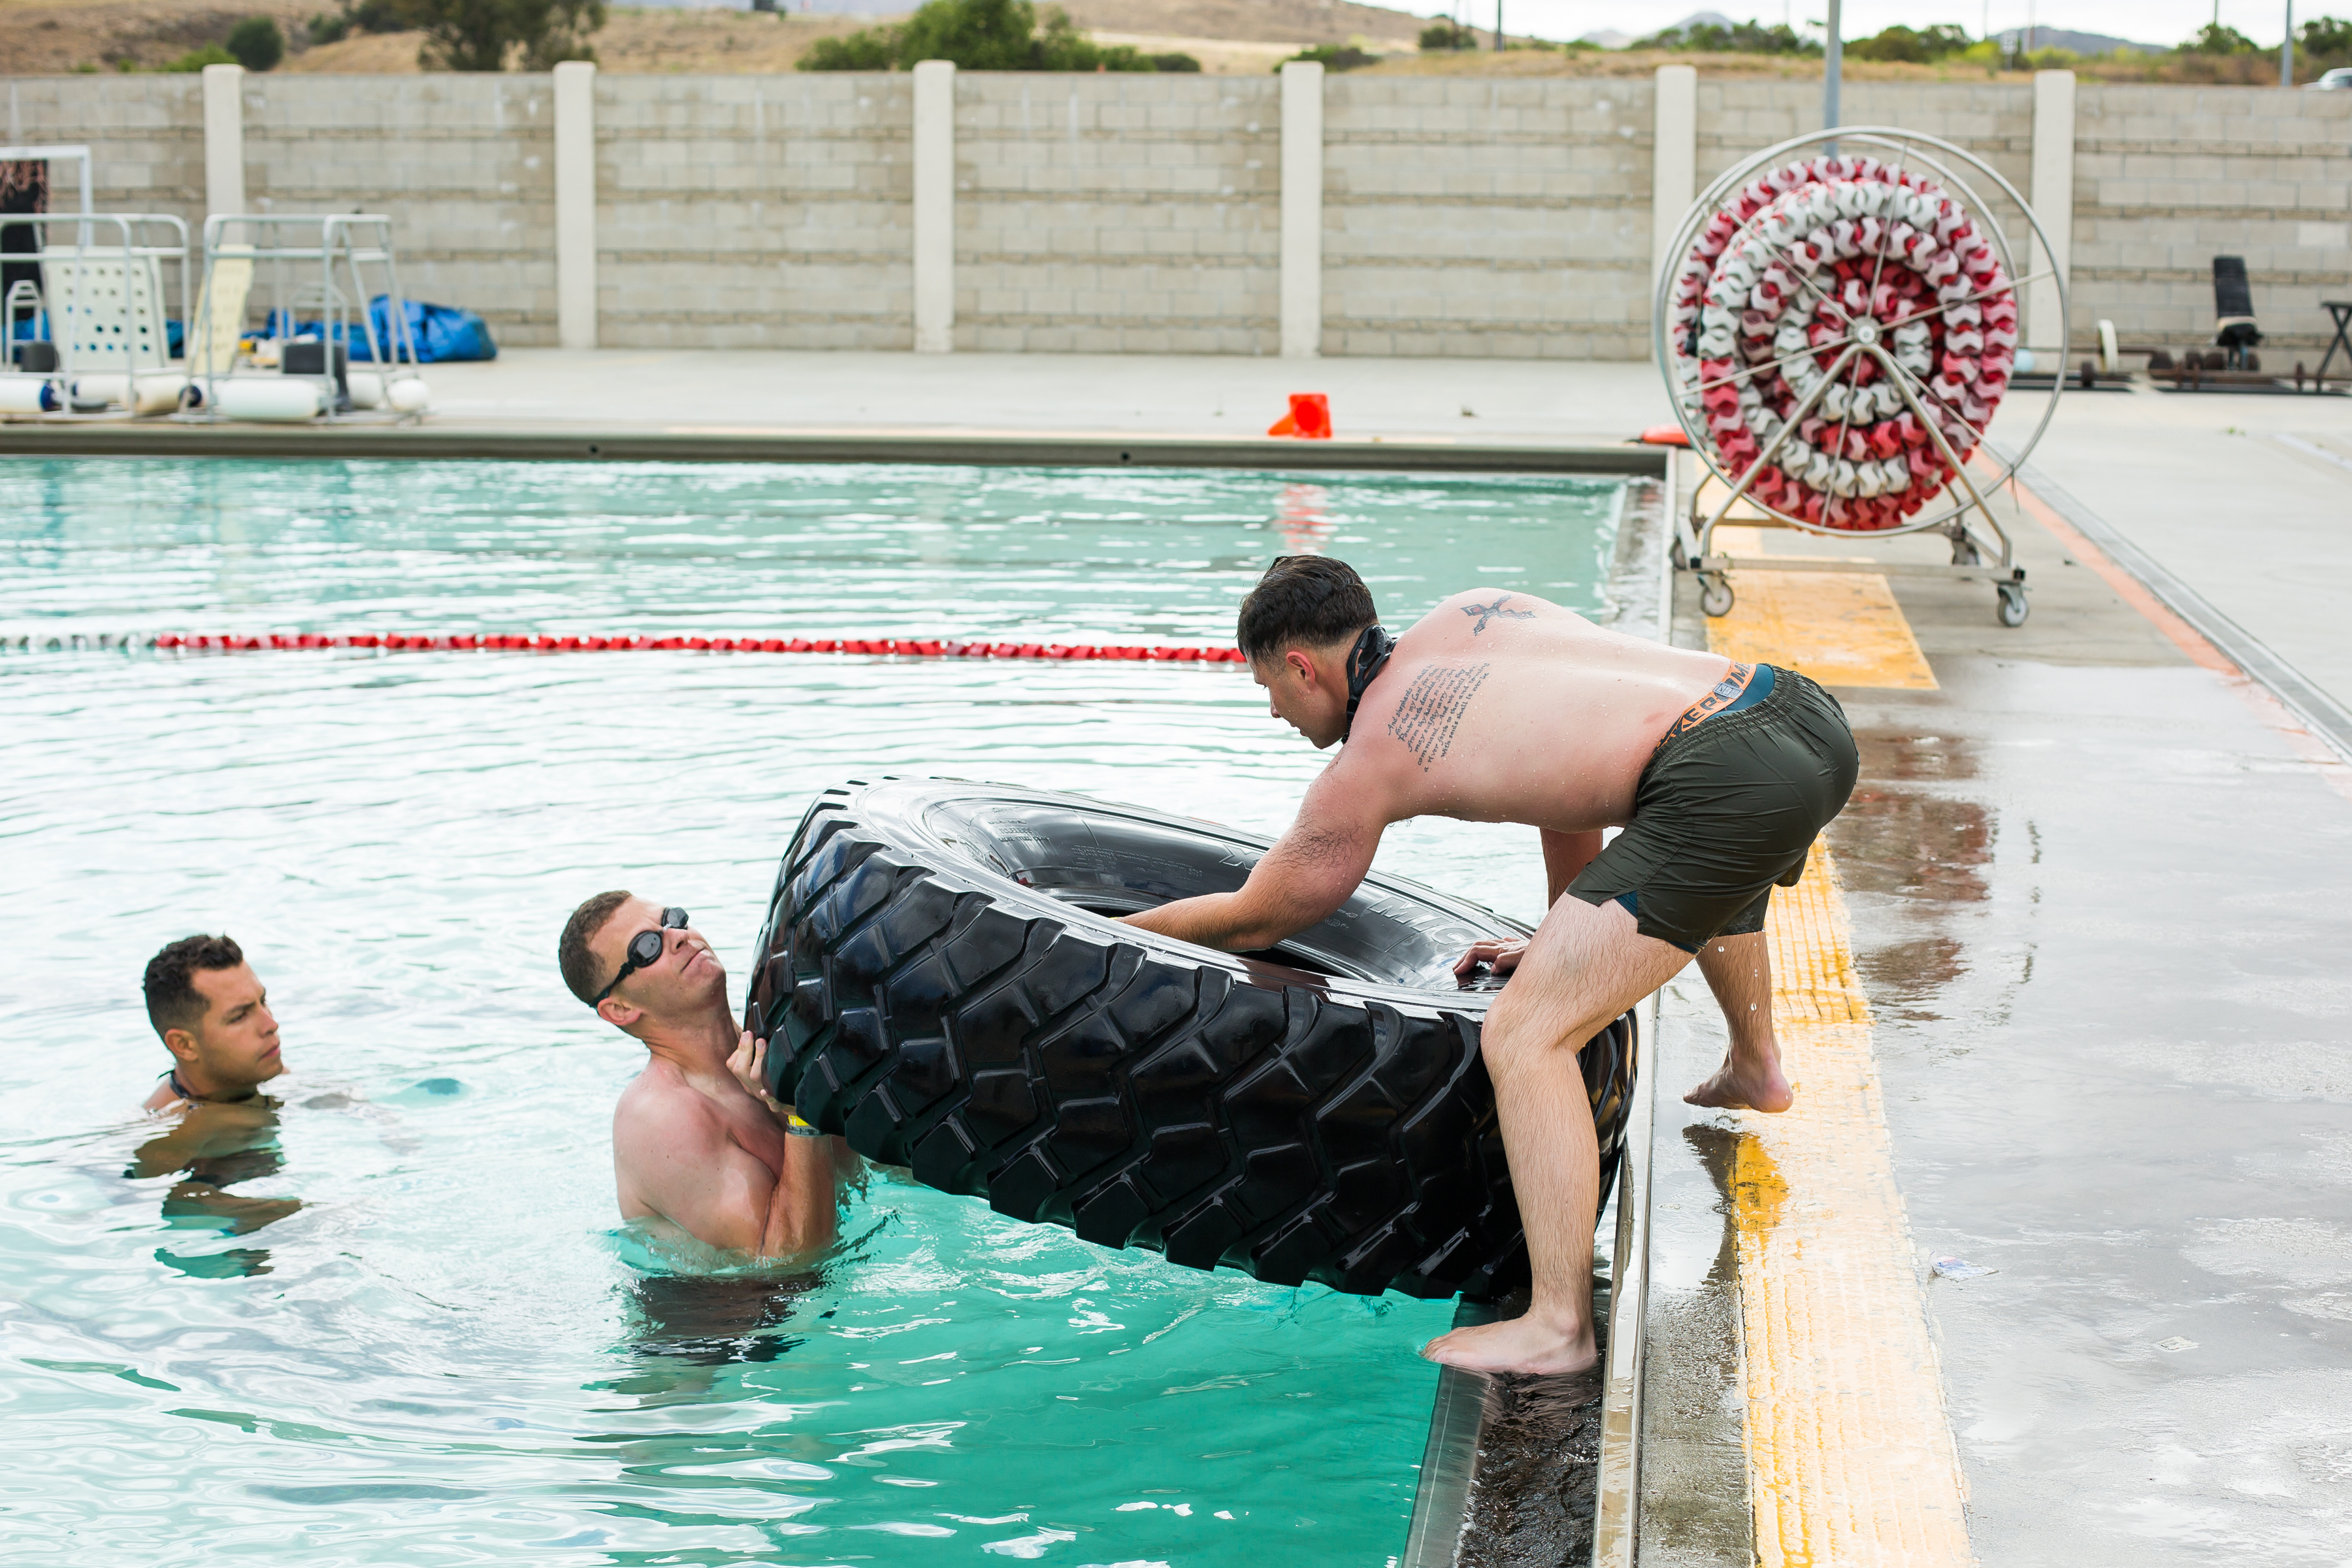 10th Annual Reconnaissance Challenge held at Camp Pendleton Thursday